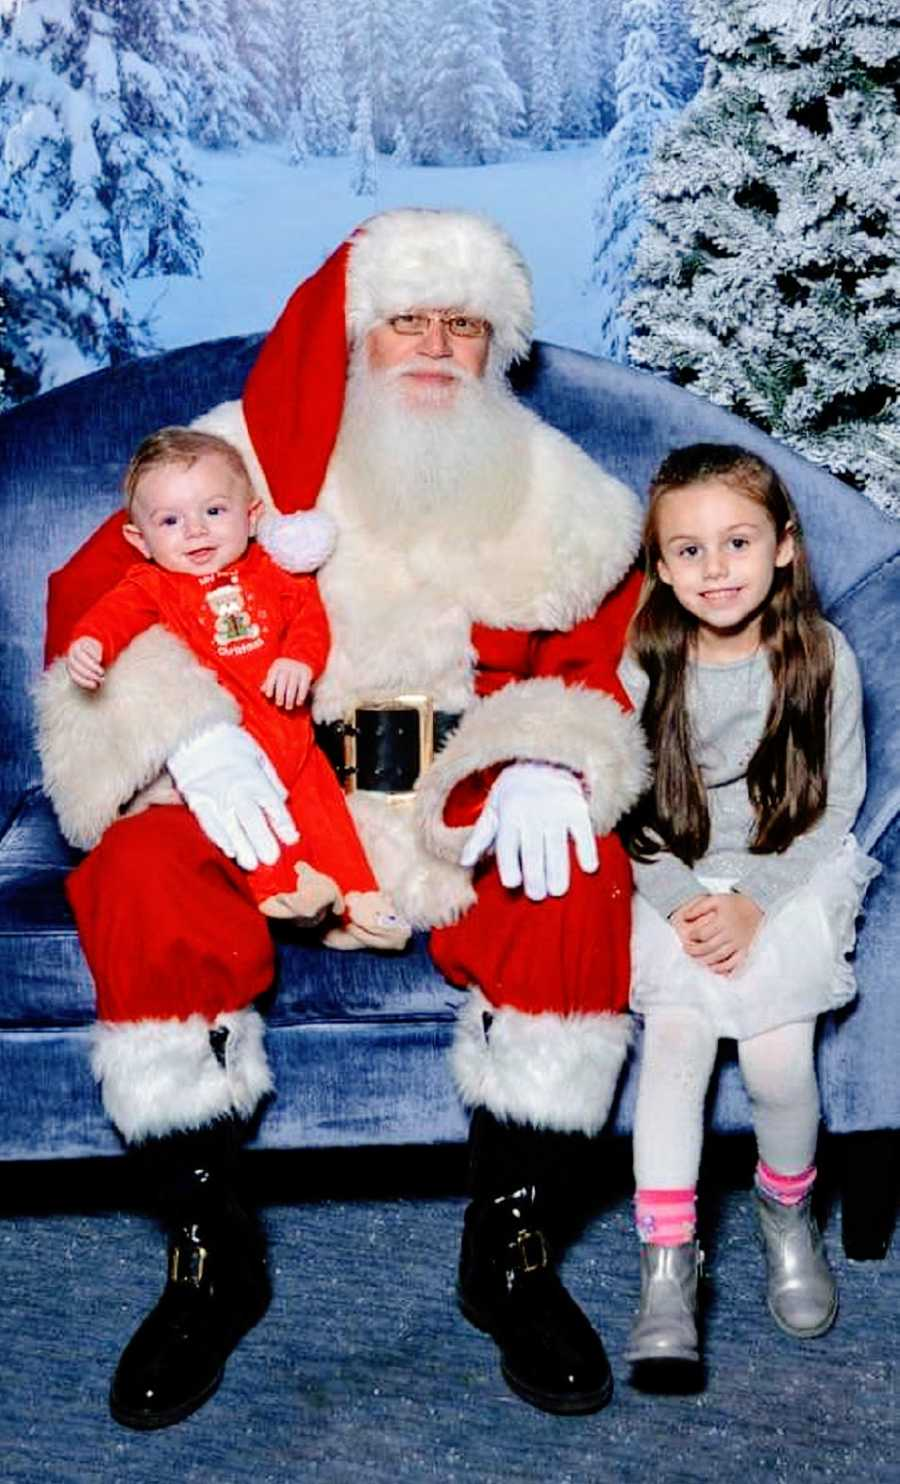 A pair of young children sit with Santa Claus